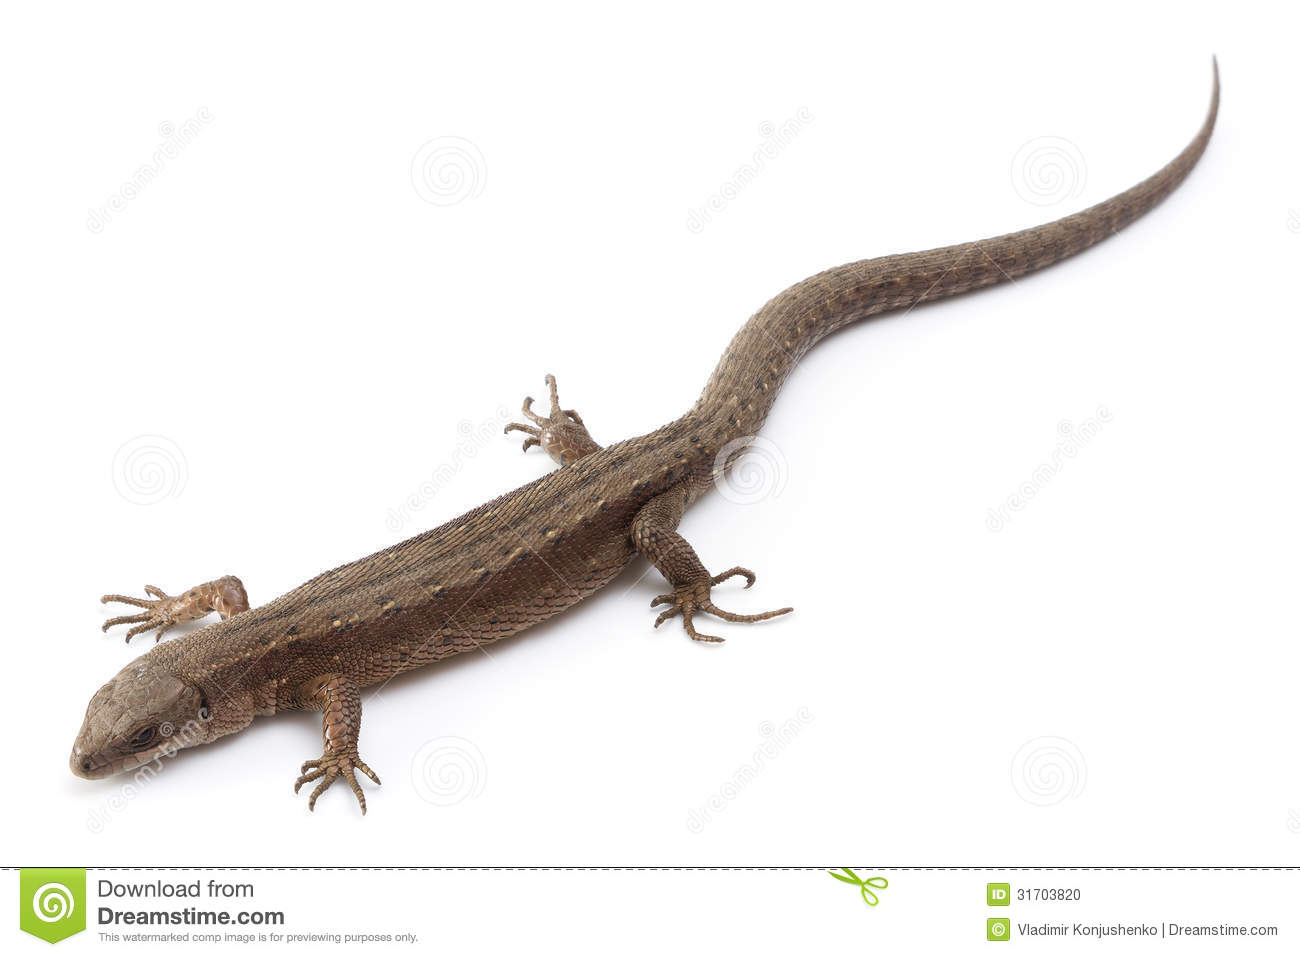 Brown lizard isolated on a white background.